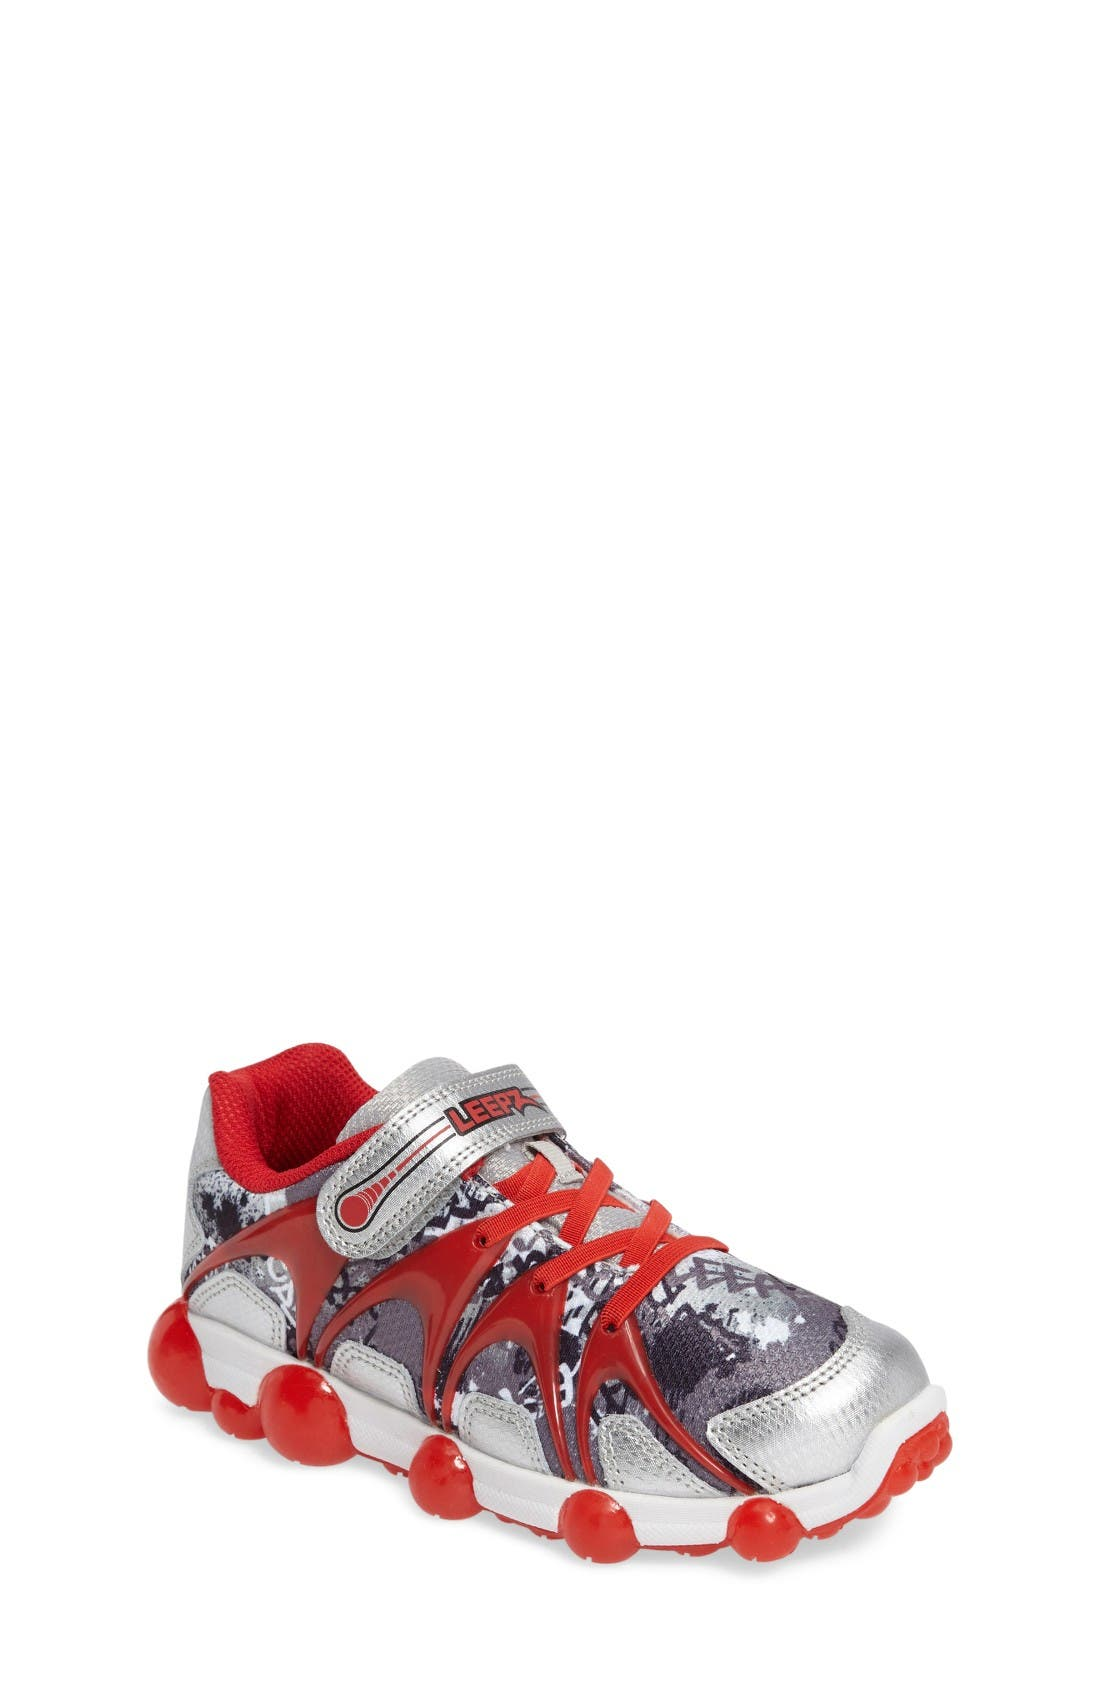 'Leepz' Light-Up Sneaker,                             Main thumbnail 1, color,                             Red/ Silver